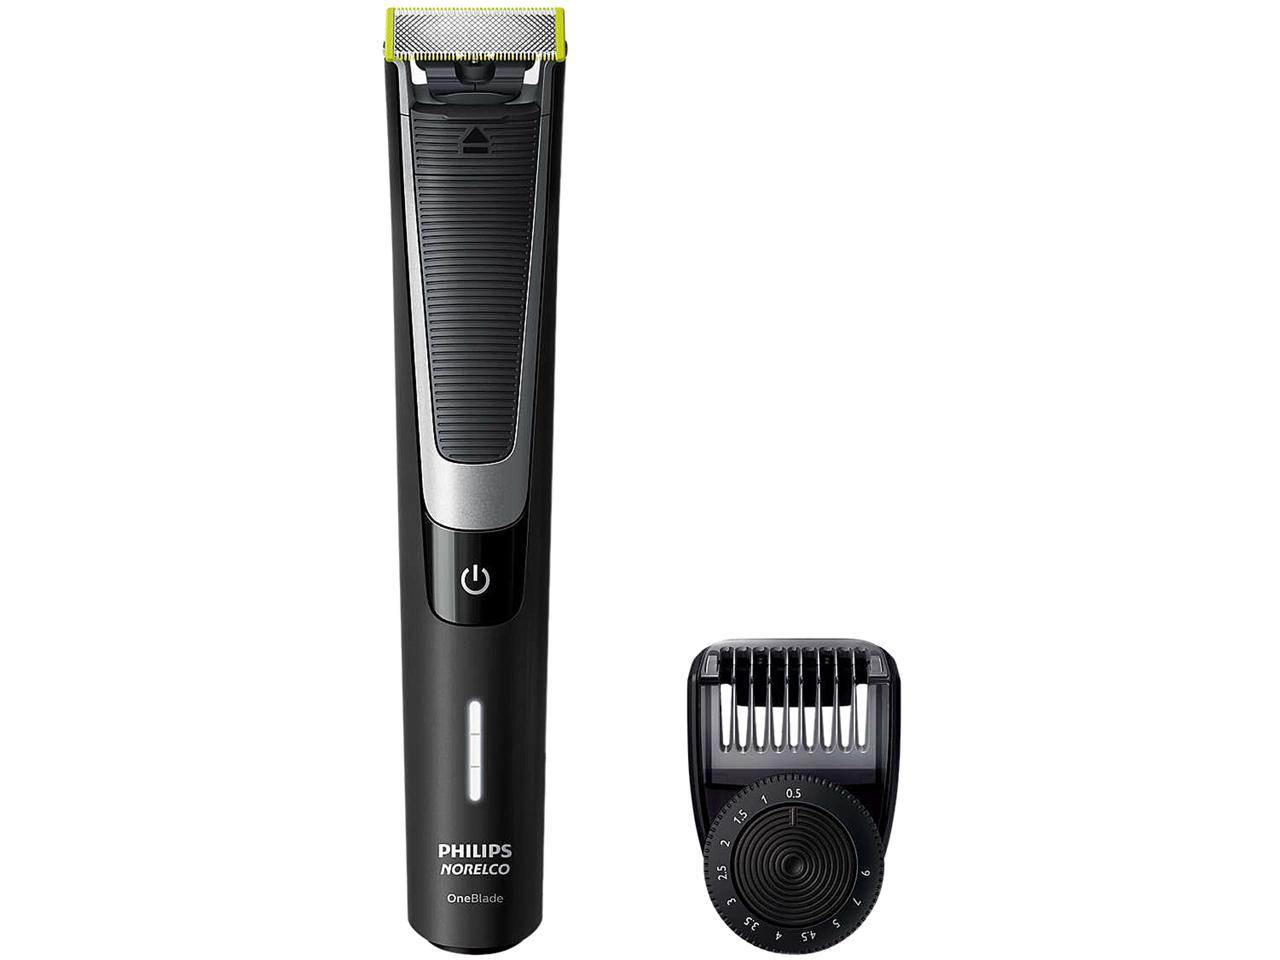 Philips Norelco OneBlade Pro Hybrid Styler with 12 Length Settings QP6510/70